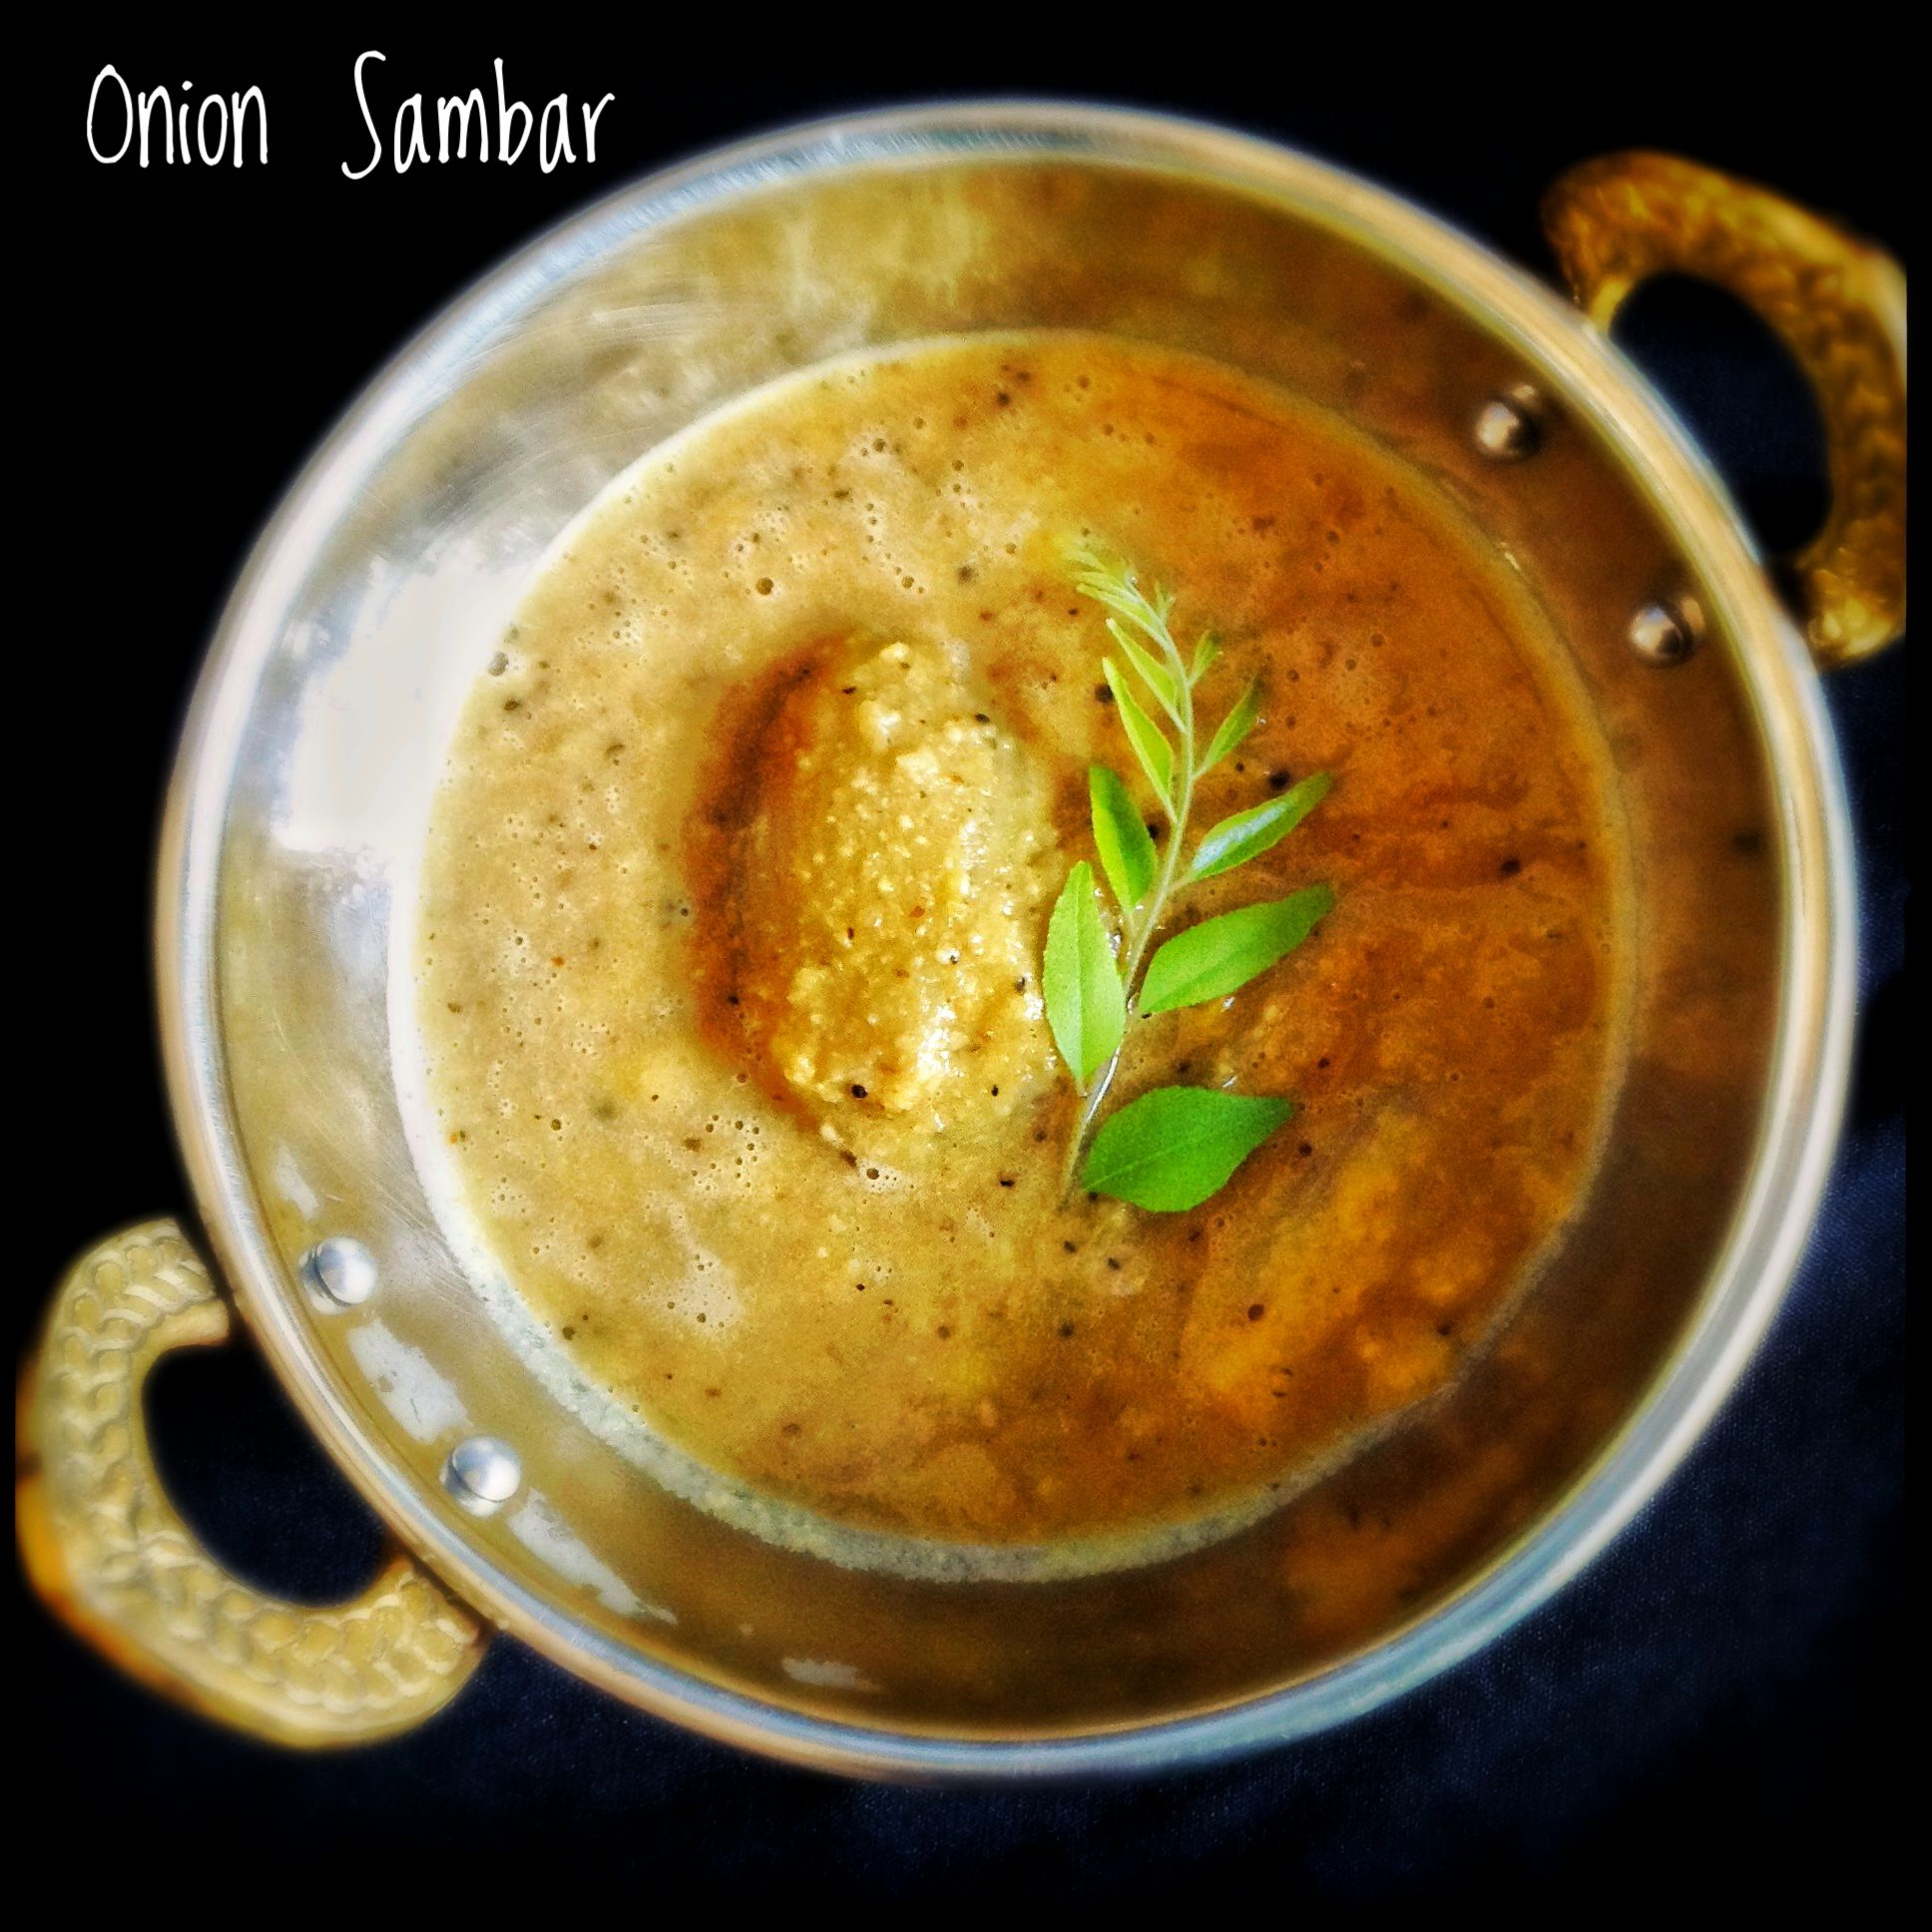 Onion sambar onions indian breakfast and indian food recipes foods onion sambar forumfinder Image collections